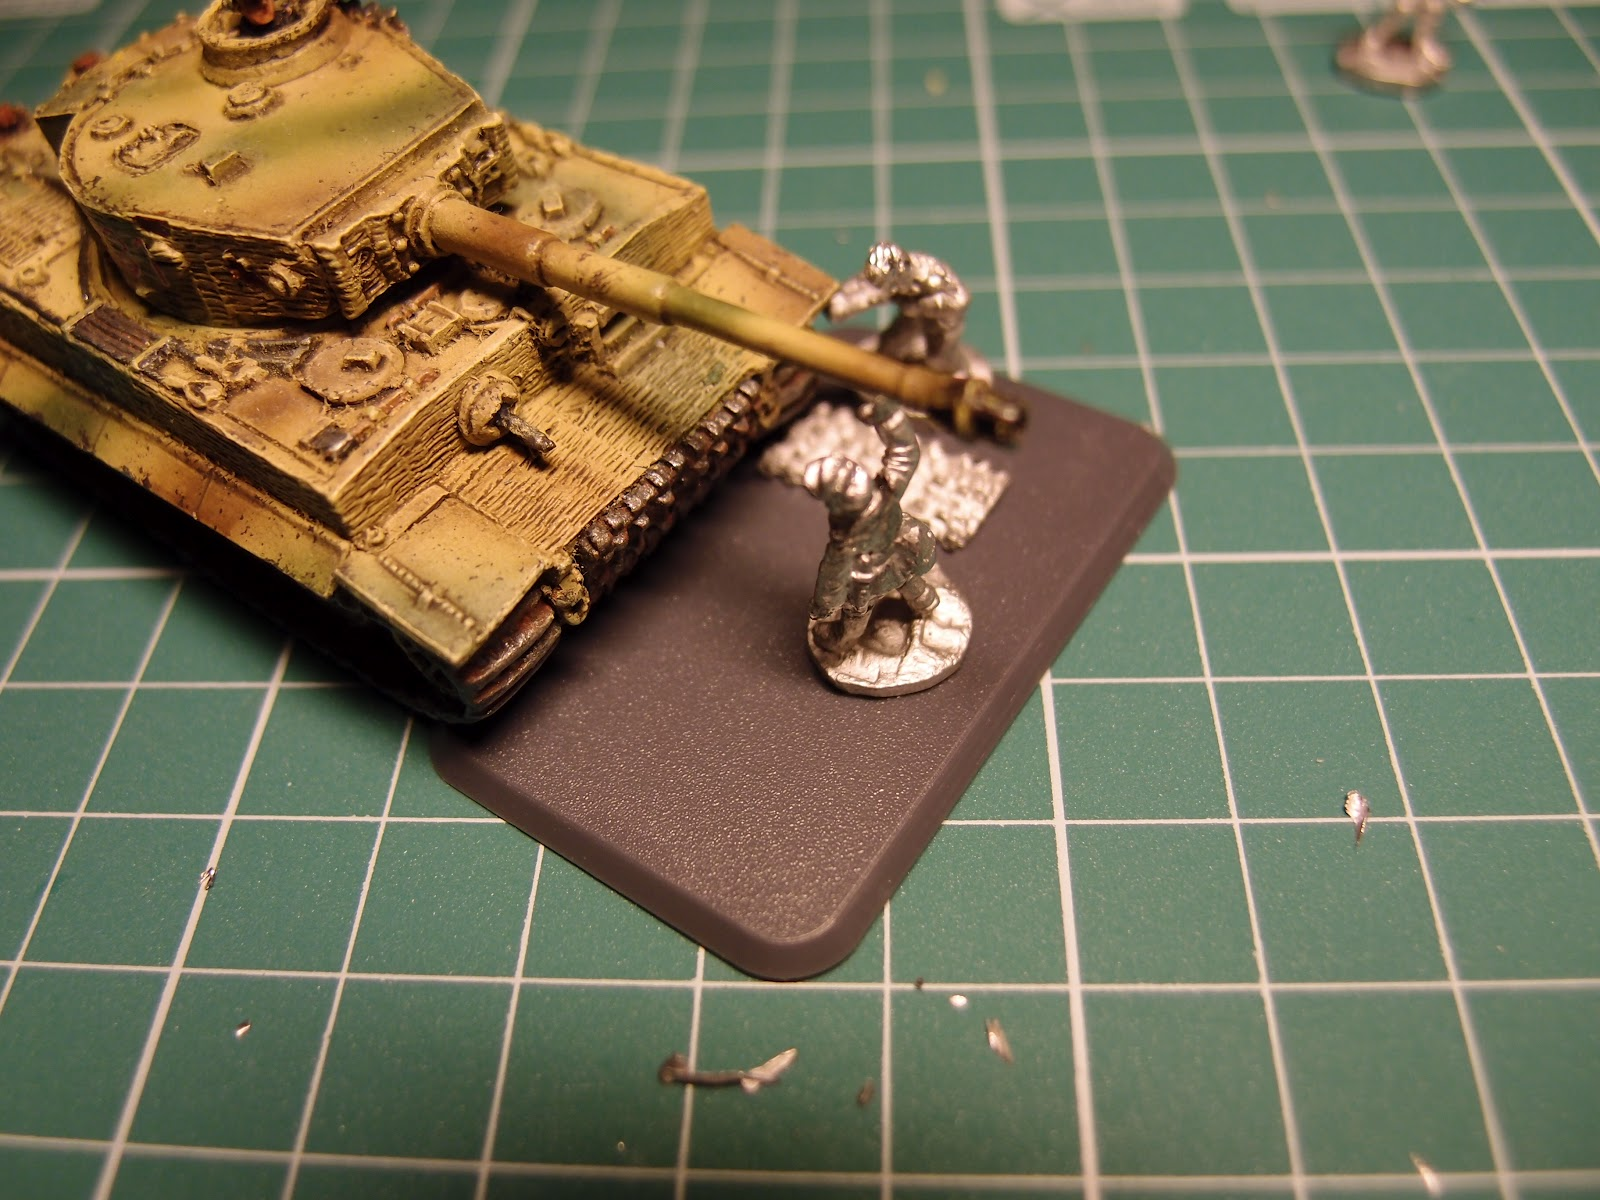 Flames of War Army: Scenic bail out and bogged down markers